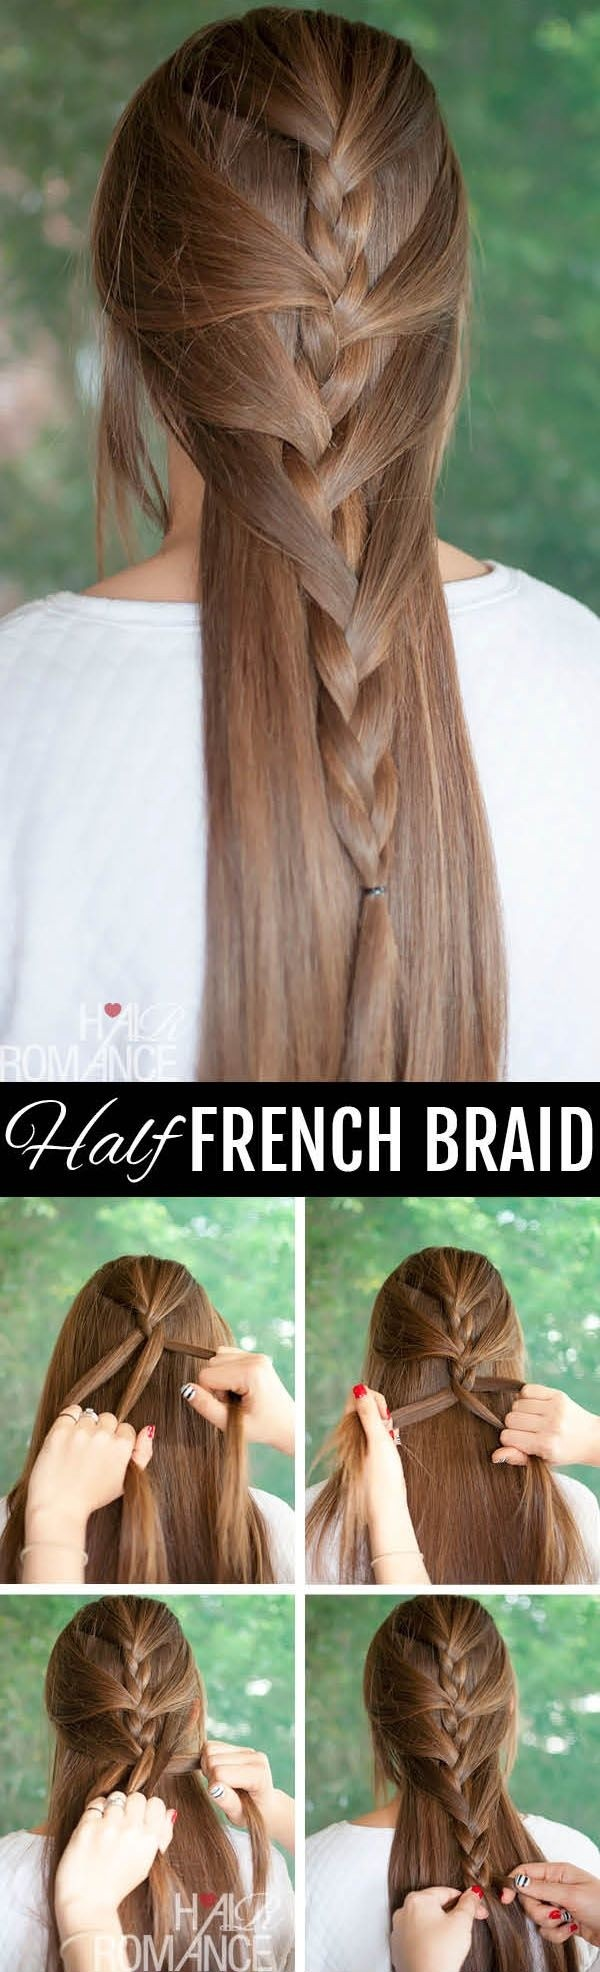 Half French Braided Hairstyle Tutorial: Chic Long Hairstyles Ideas